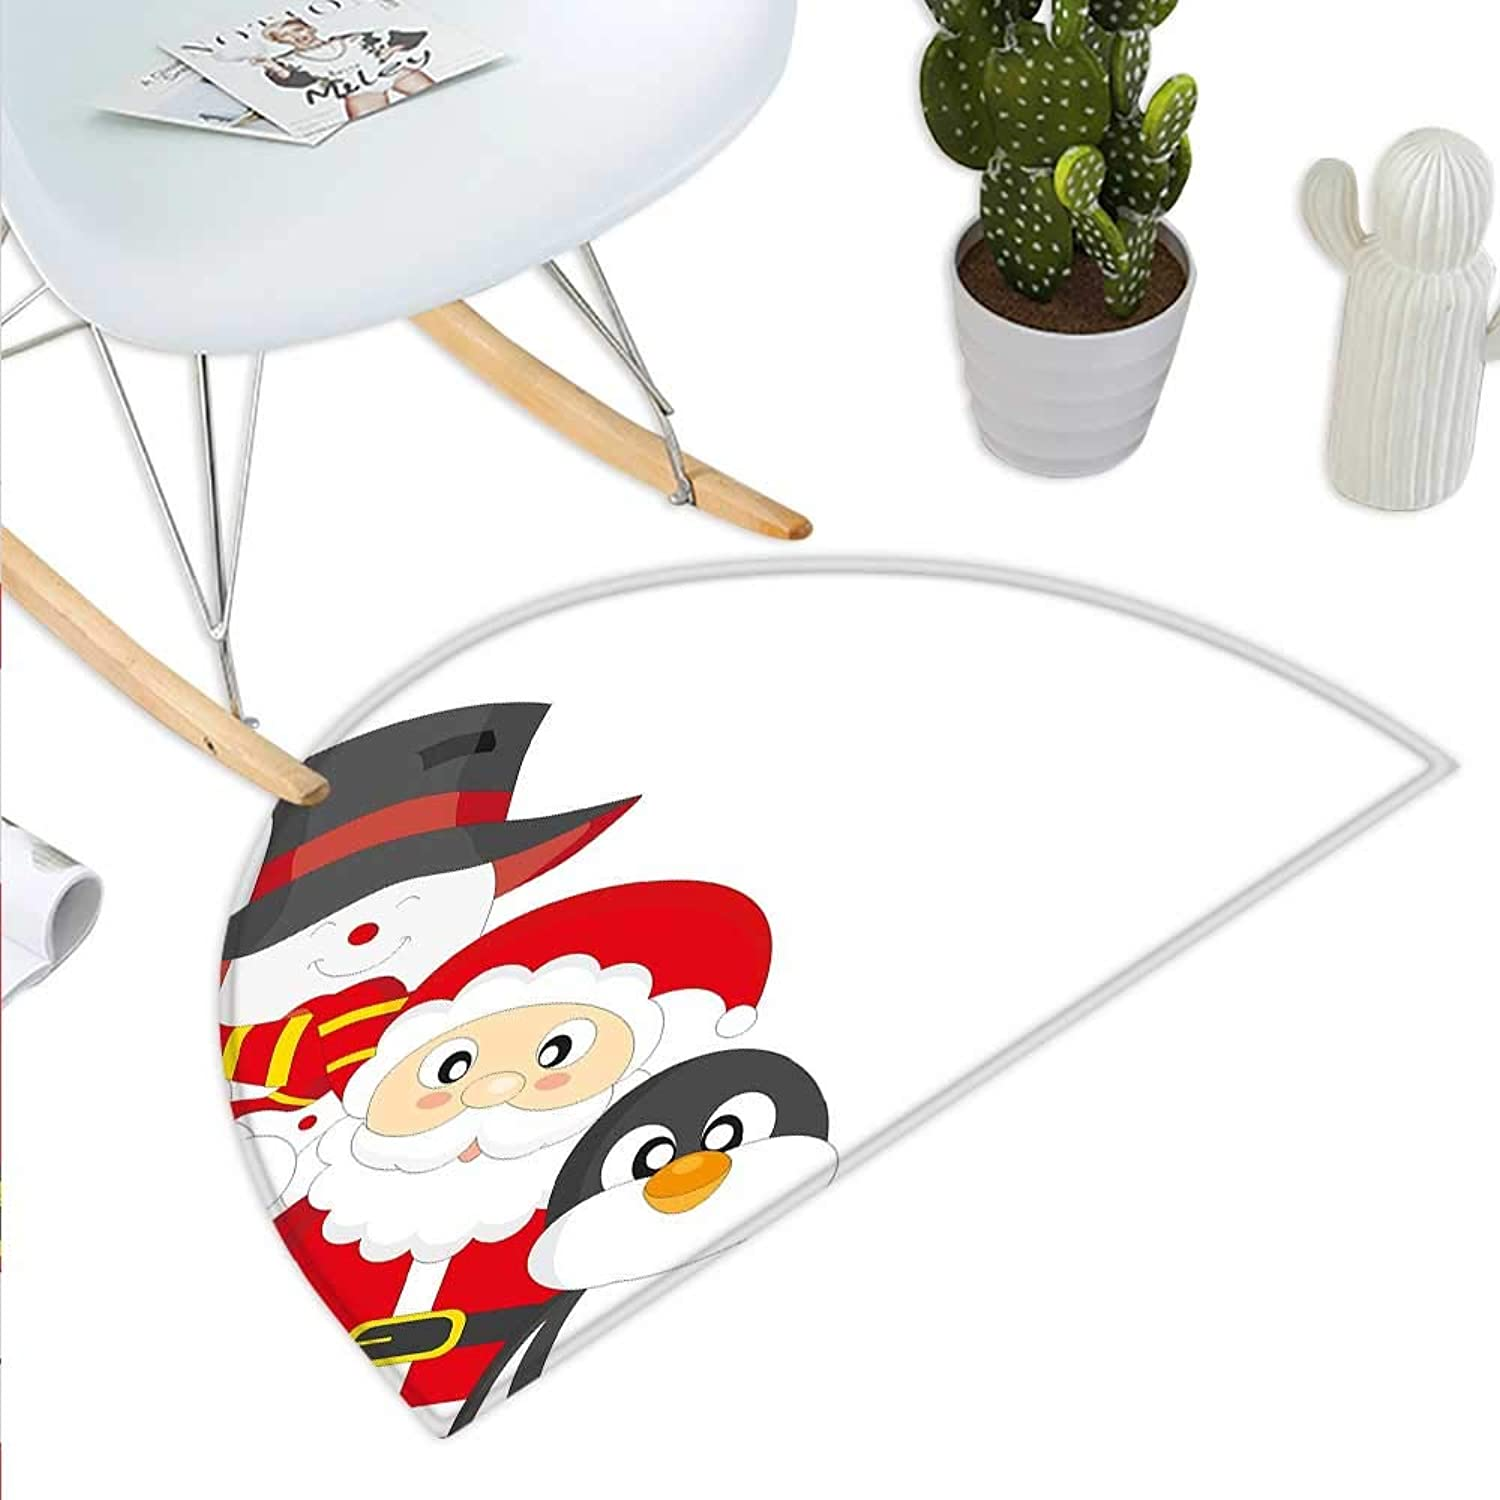 Christmas Semicircle Doormat Friendly Happy Santa Claus Penguin Snowman Festive Holiday Design Halfmoon doormats H 35.4  xD 53.1  Charcoal Grey Red White